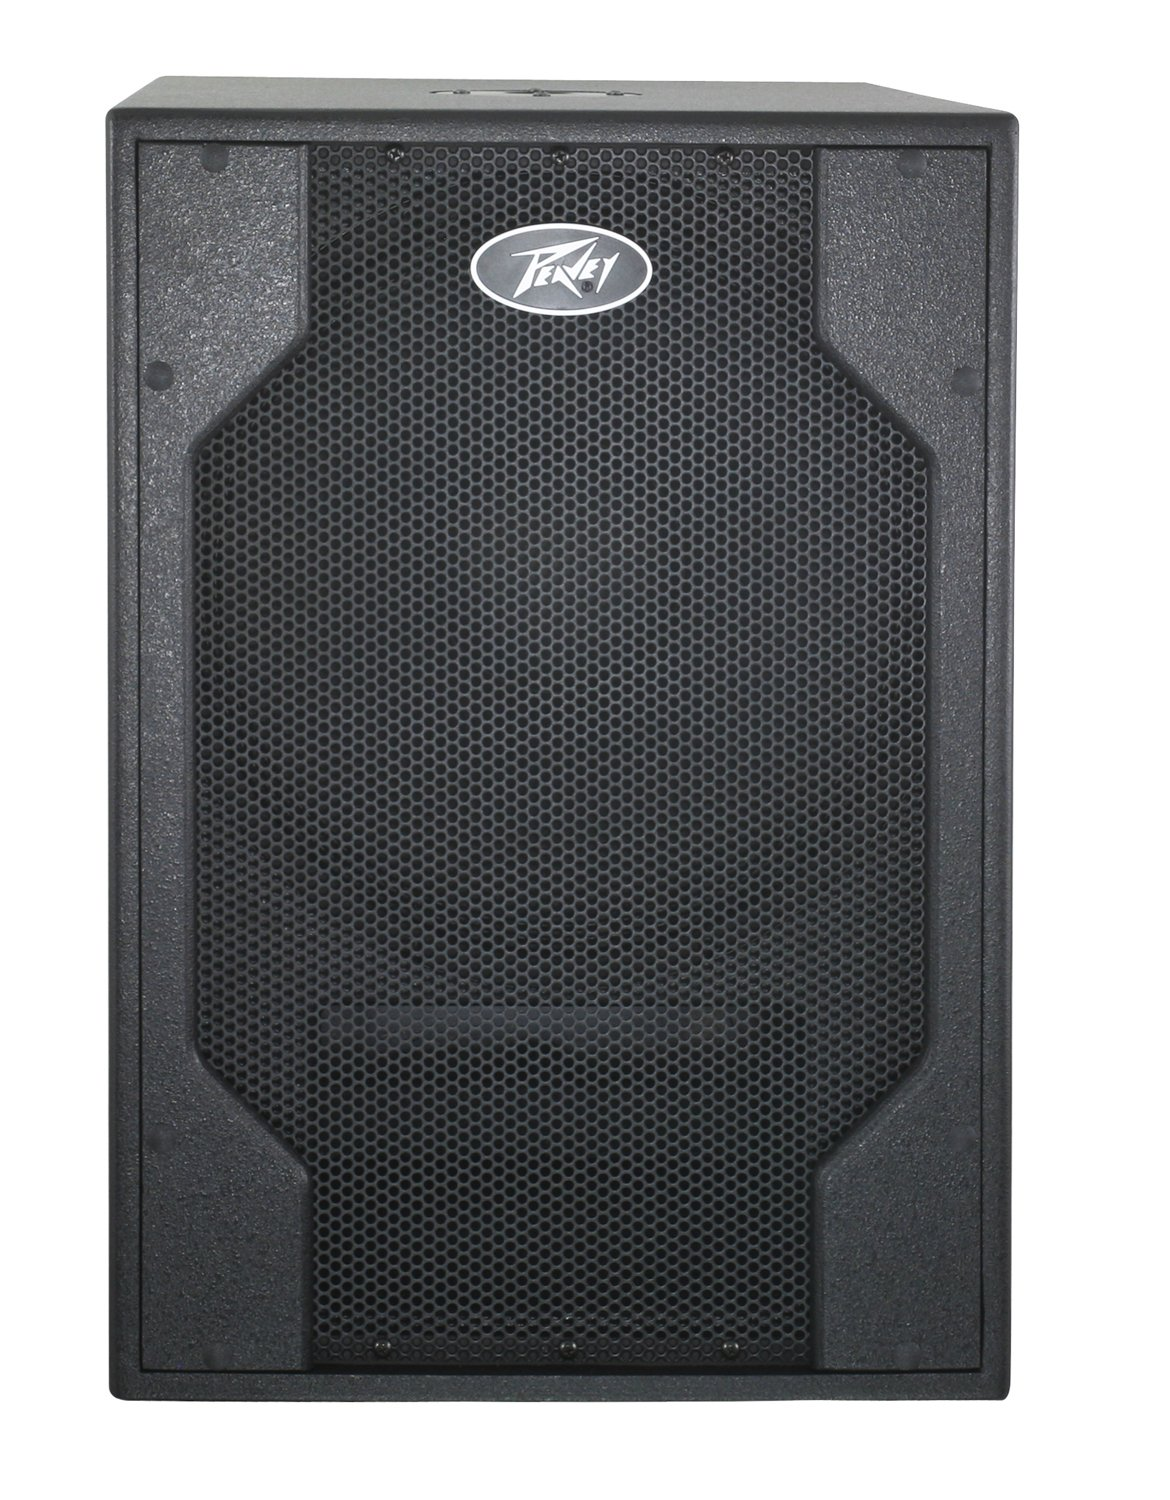 Peavey PVXp 800-Watt 15 inch Powered Subwoofer